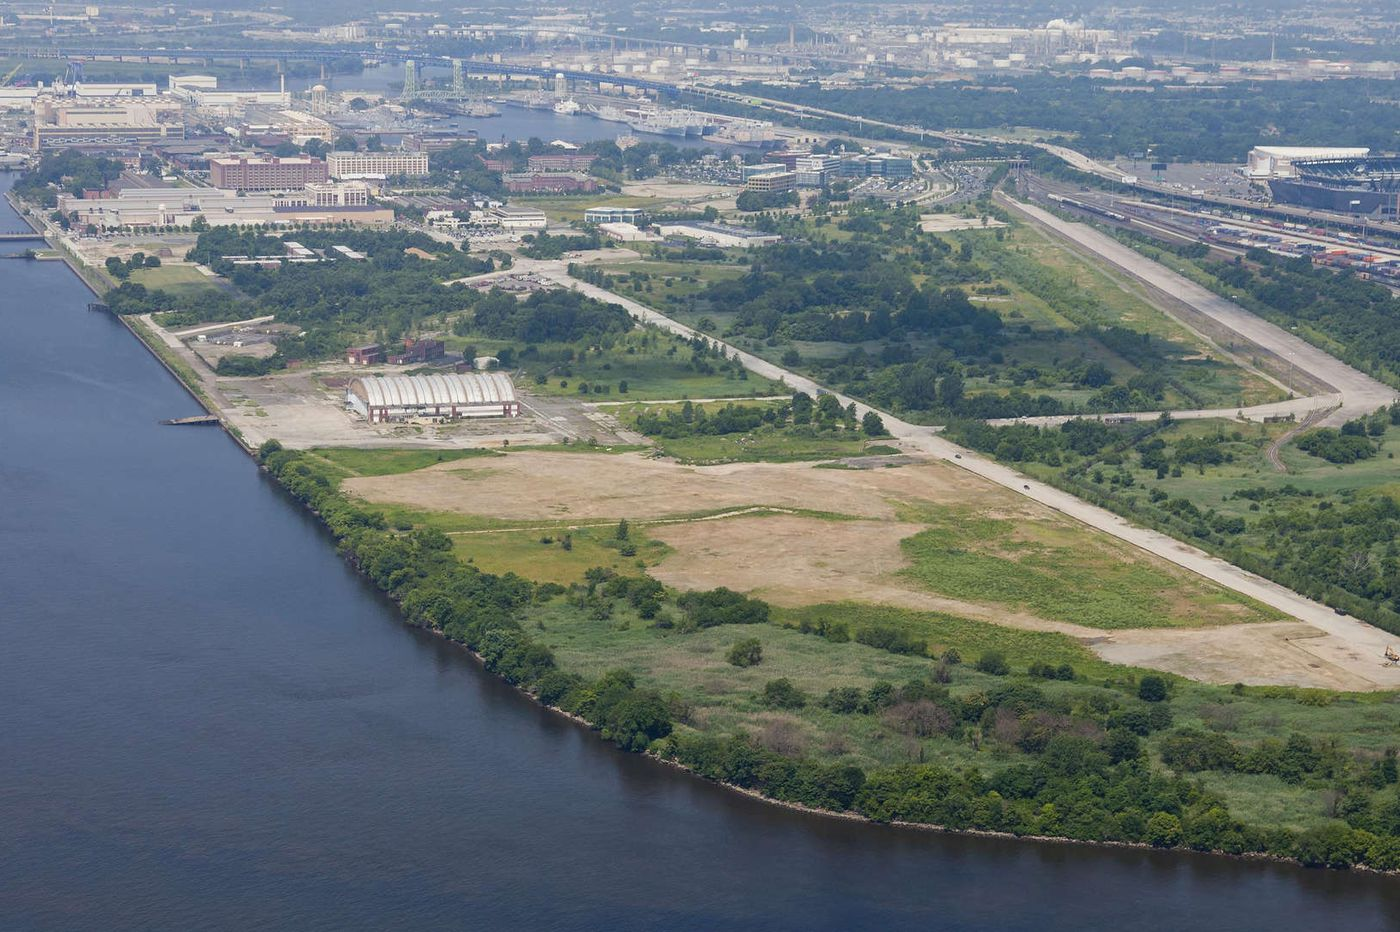 Gov. Wolf pledges $300 million to revitalize the Philadelphia port, add cranes and warehouses for cargoes and autos